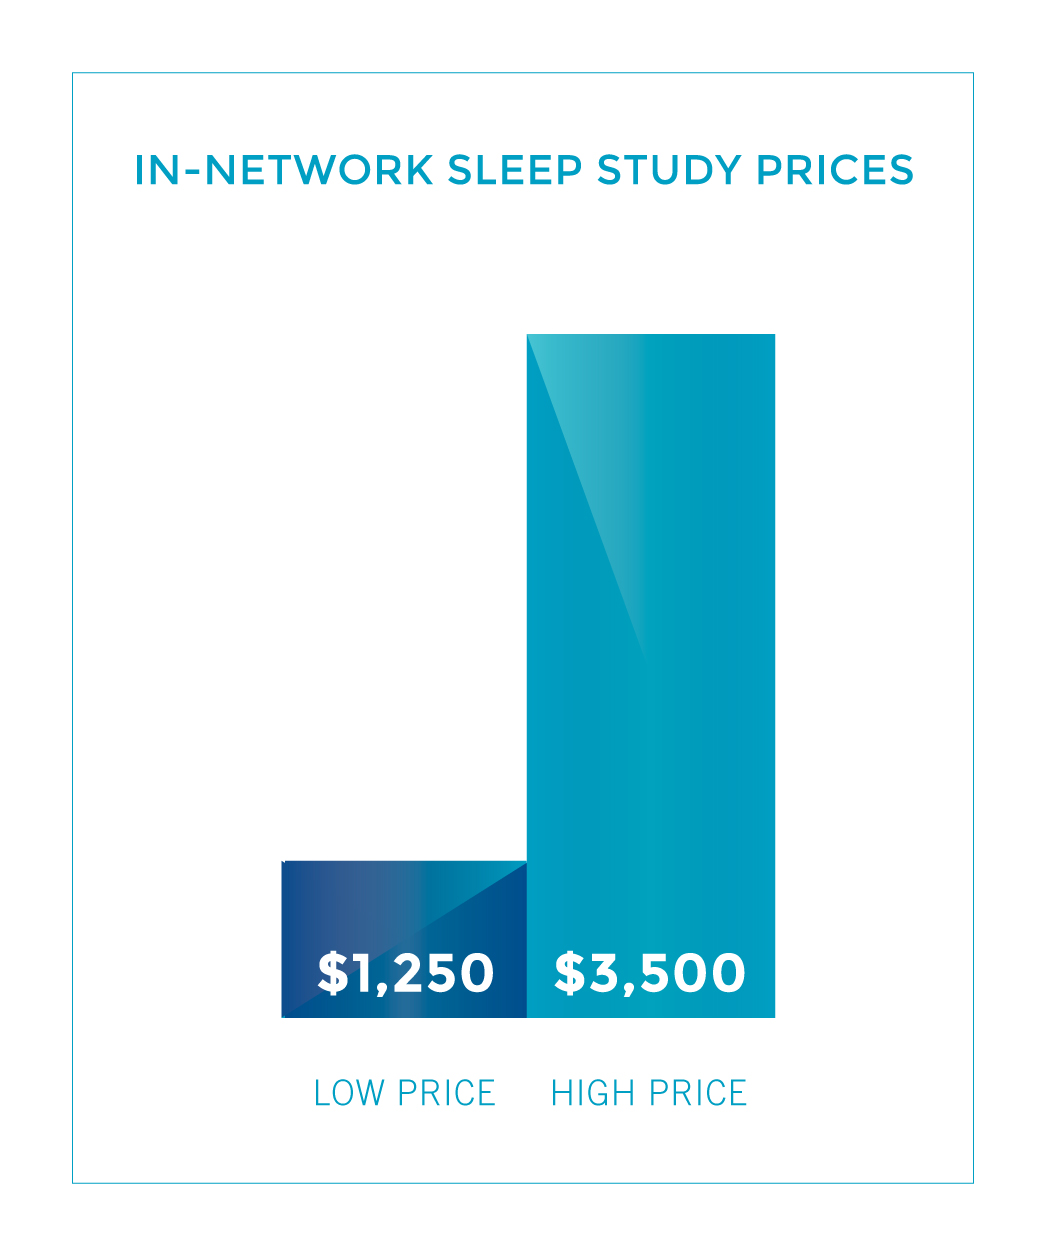 In-Network Sleep Study Prices